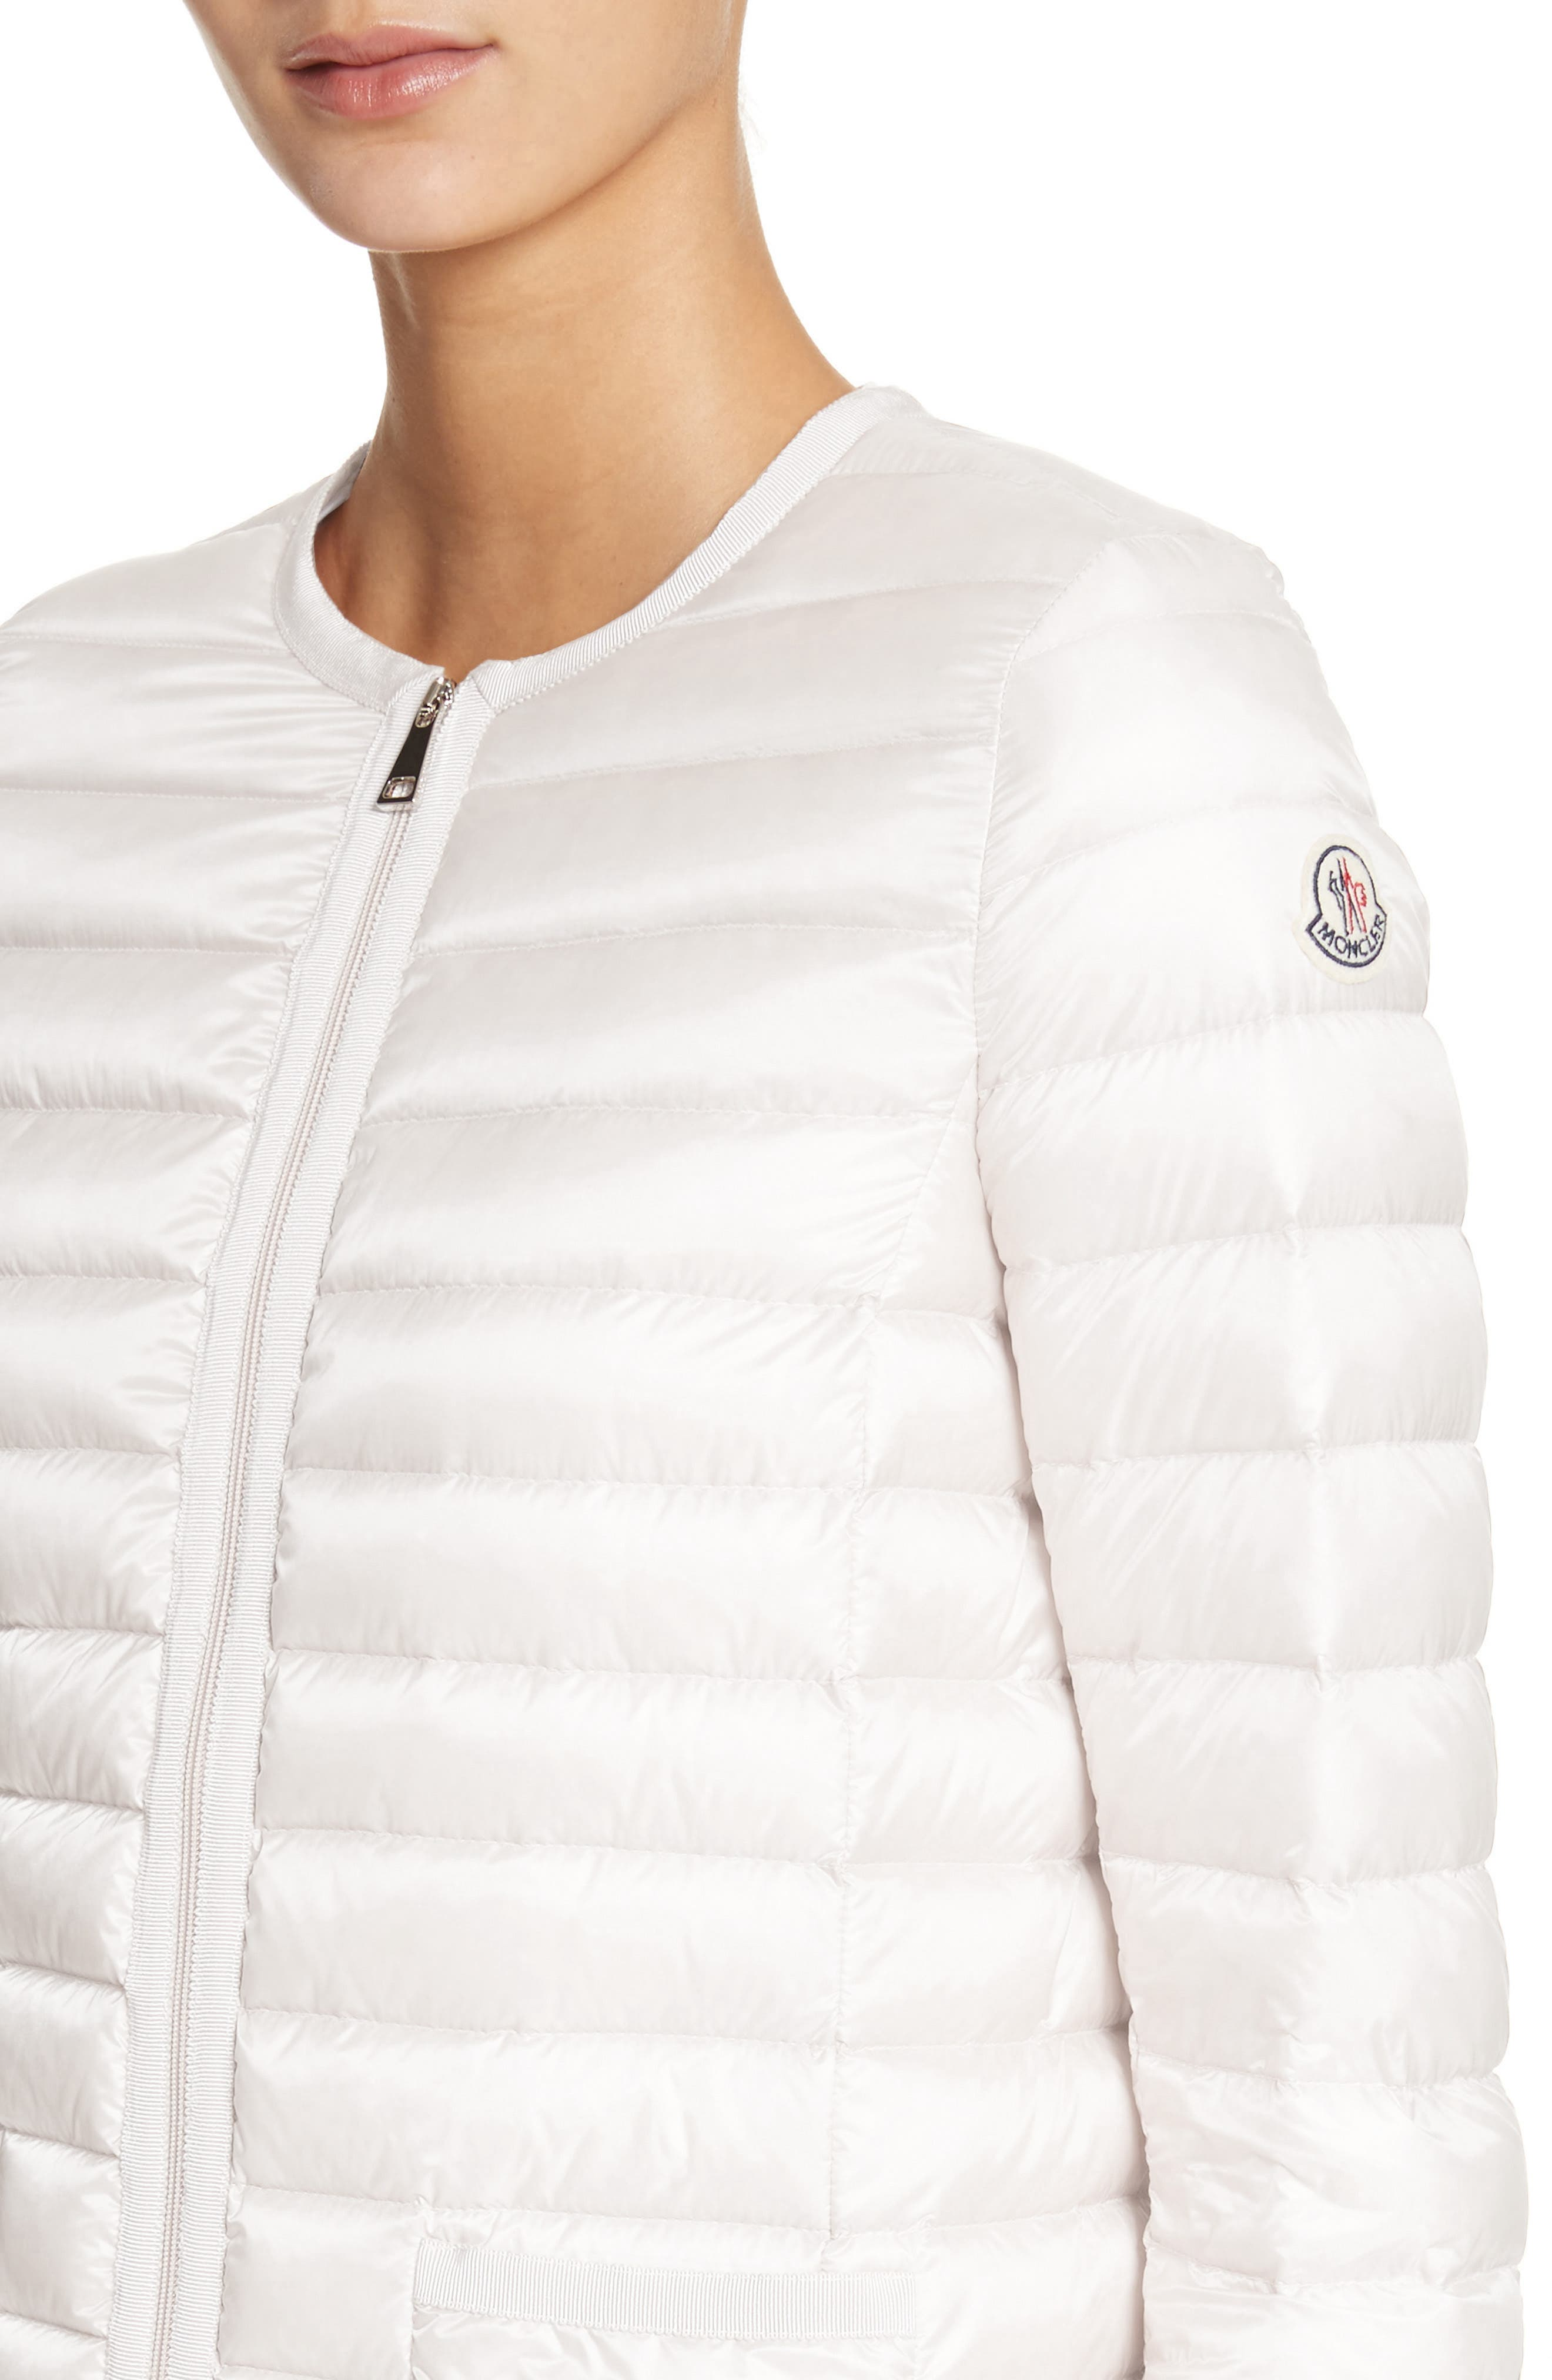 Almandin Quilted Puffer Jacket,                             Alternate thumbnail 4, color,                             101